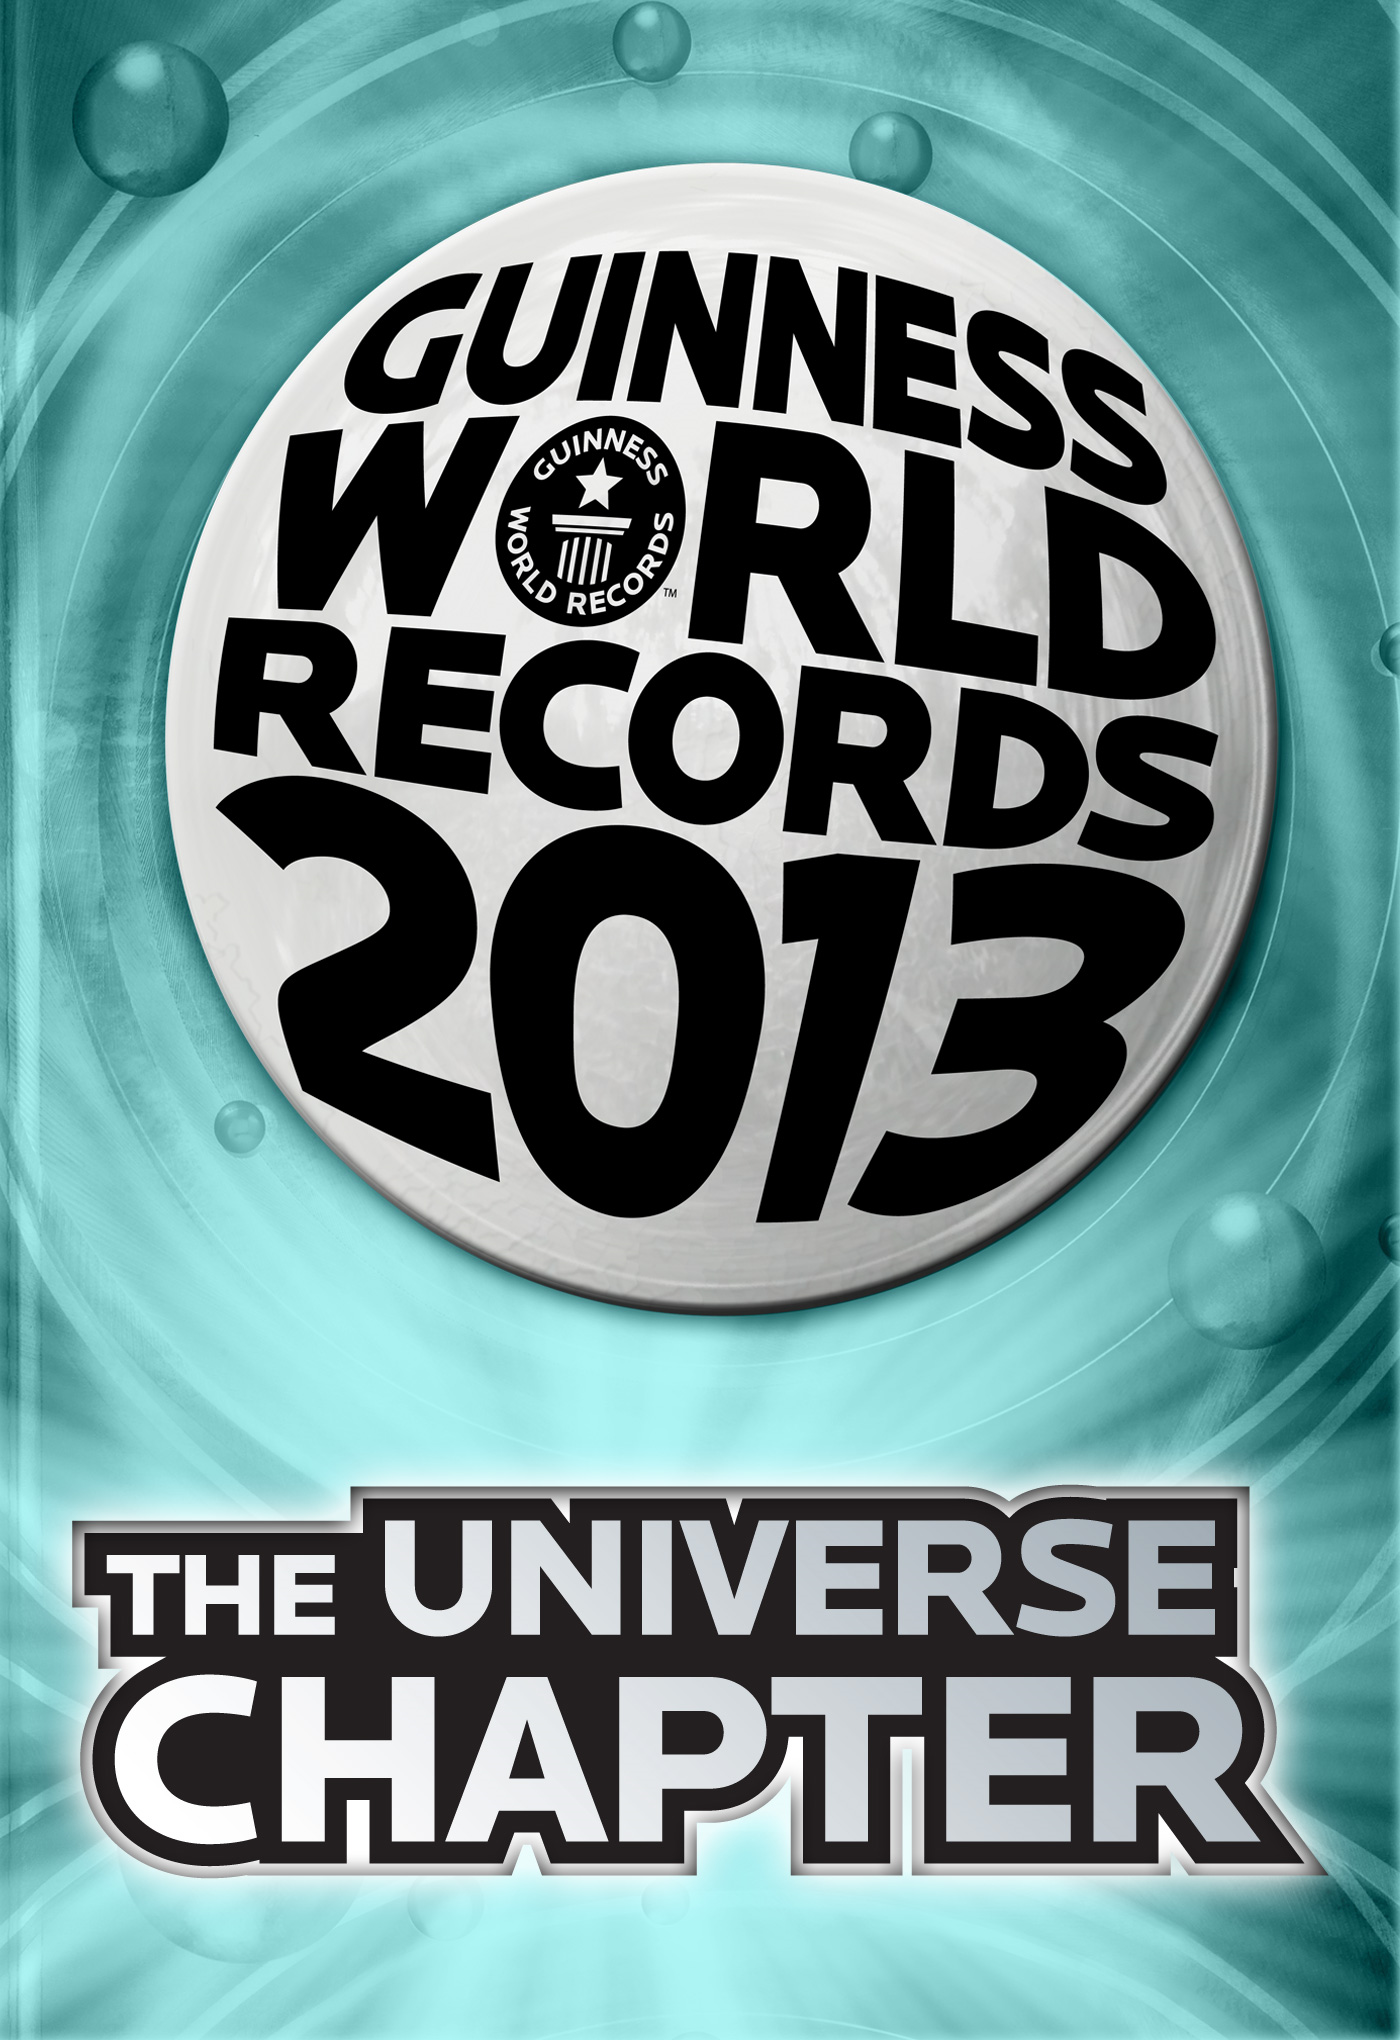 Guinness World Records 2013 - The Universe Chapter